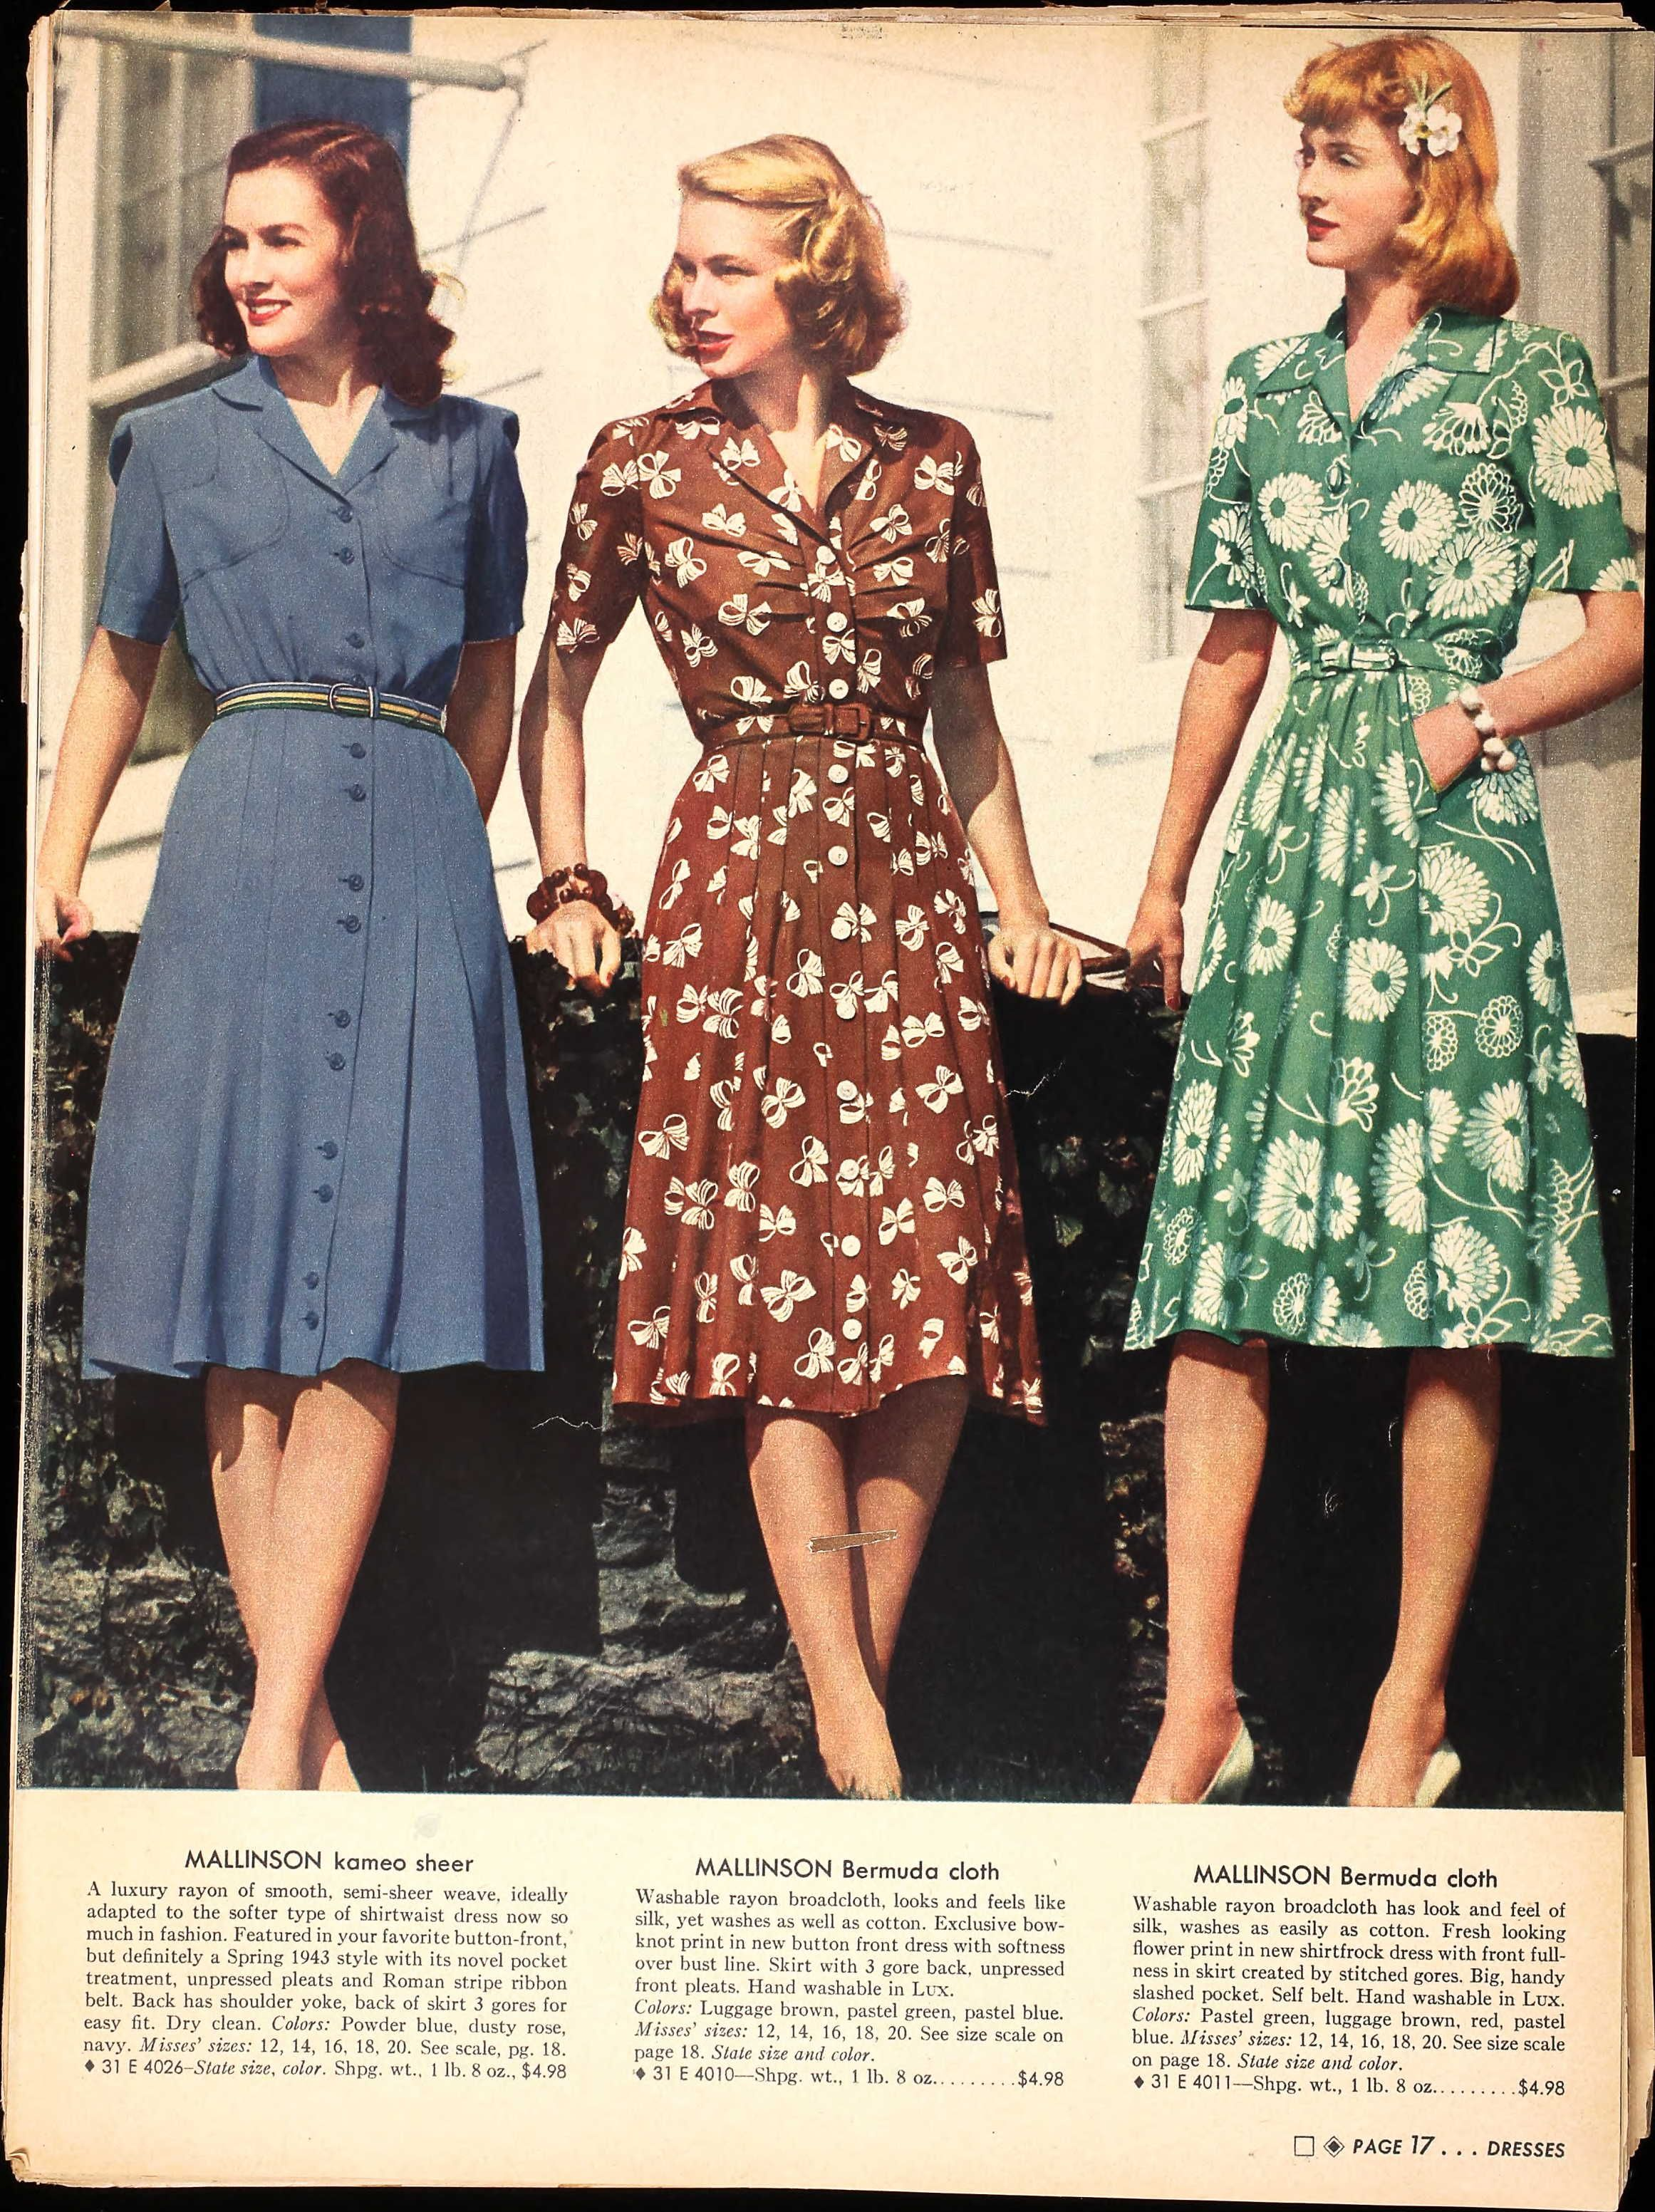 67f94f7f52d U.S. Sears catalog 1943 vintage fashion day dress 40s green brown blue  floral rayon color photo print ad catalogue war era WWII hairstyle